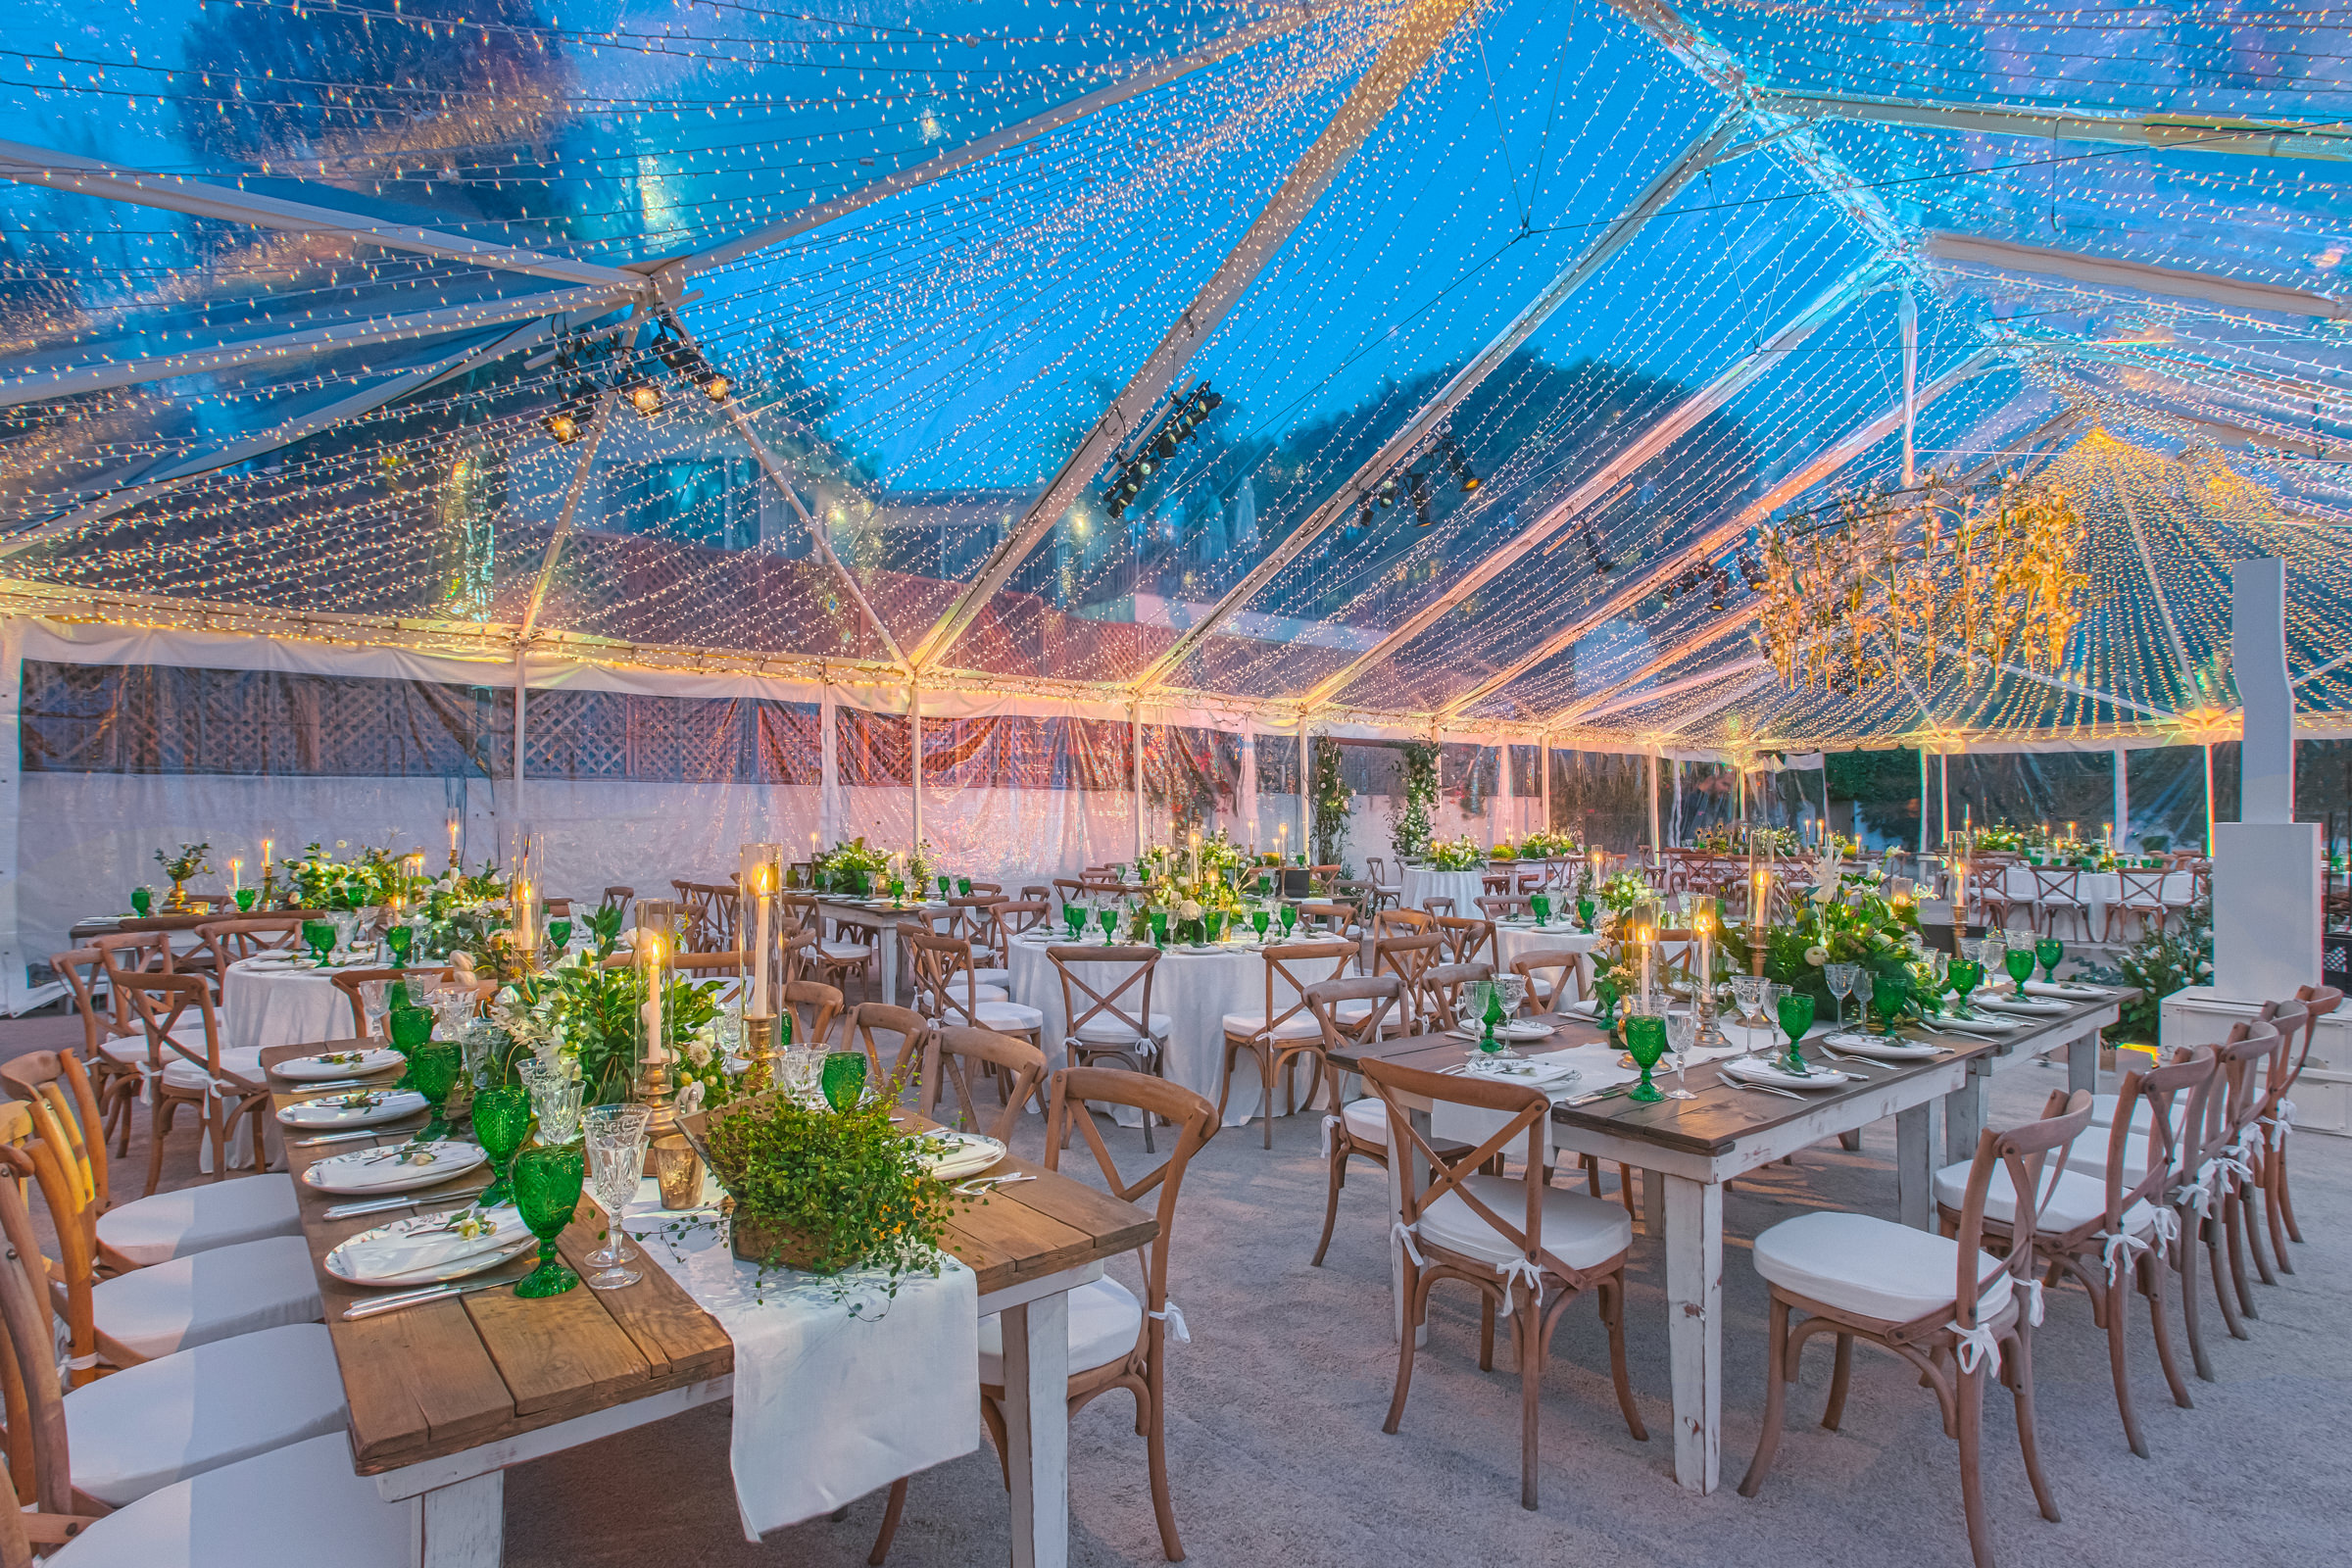 Green and yellow reception decor outdoors under tent - photo by Amy and Stuart Photography